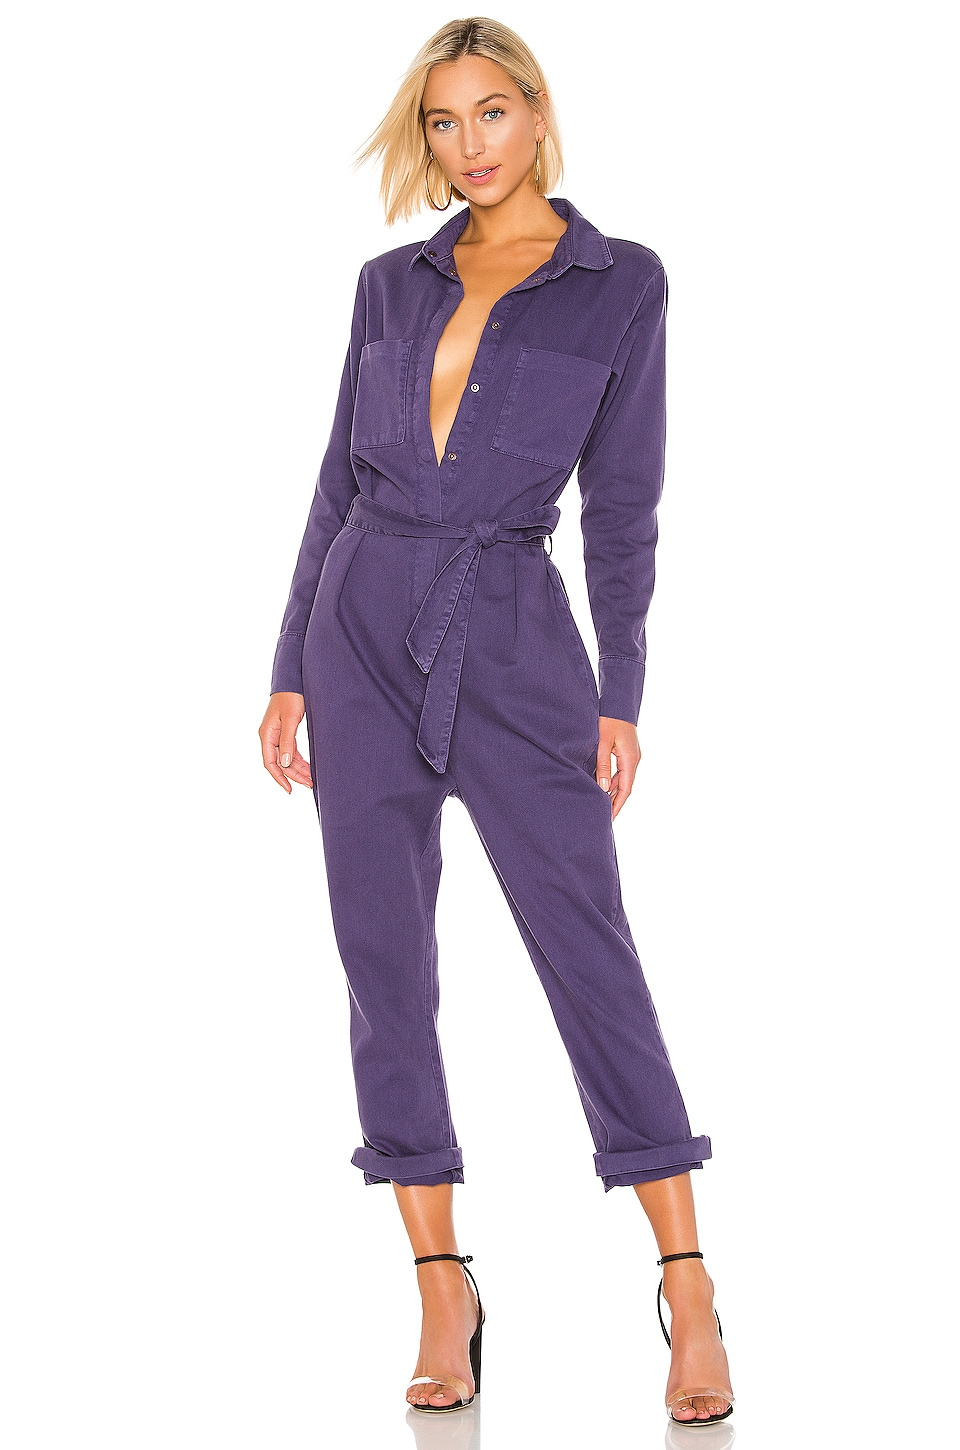 One Teaspoon Soho Suit in French Blue